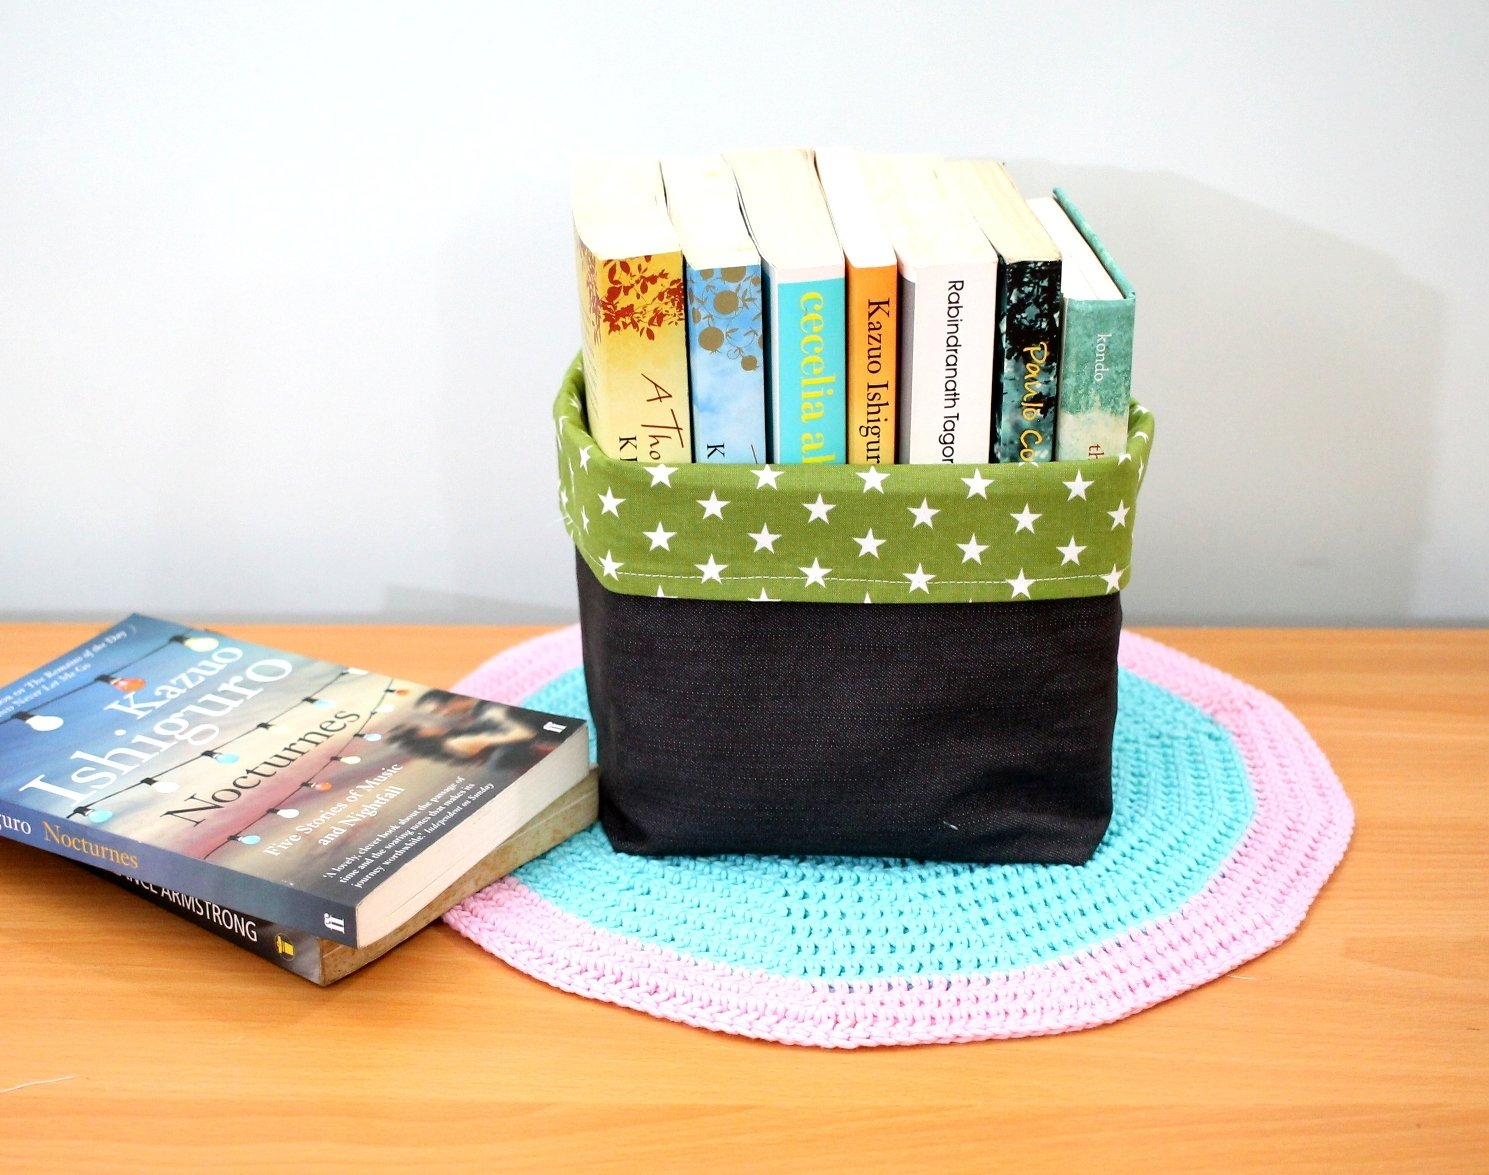 Reversible Fabric Storage for Story Books, Novel, etc -  Black Denim & Green Star